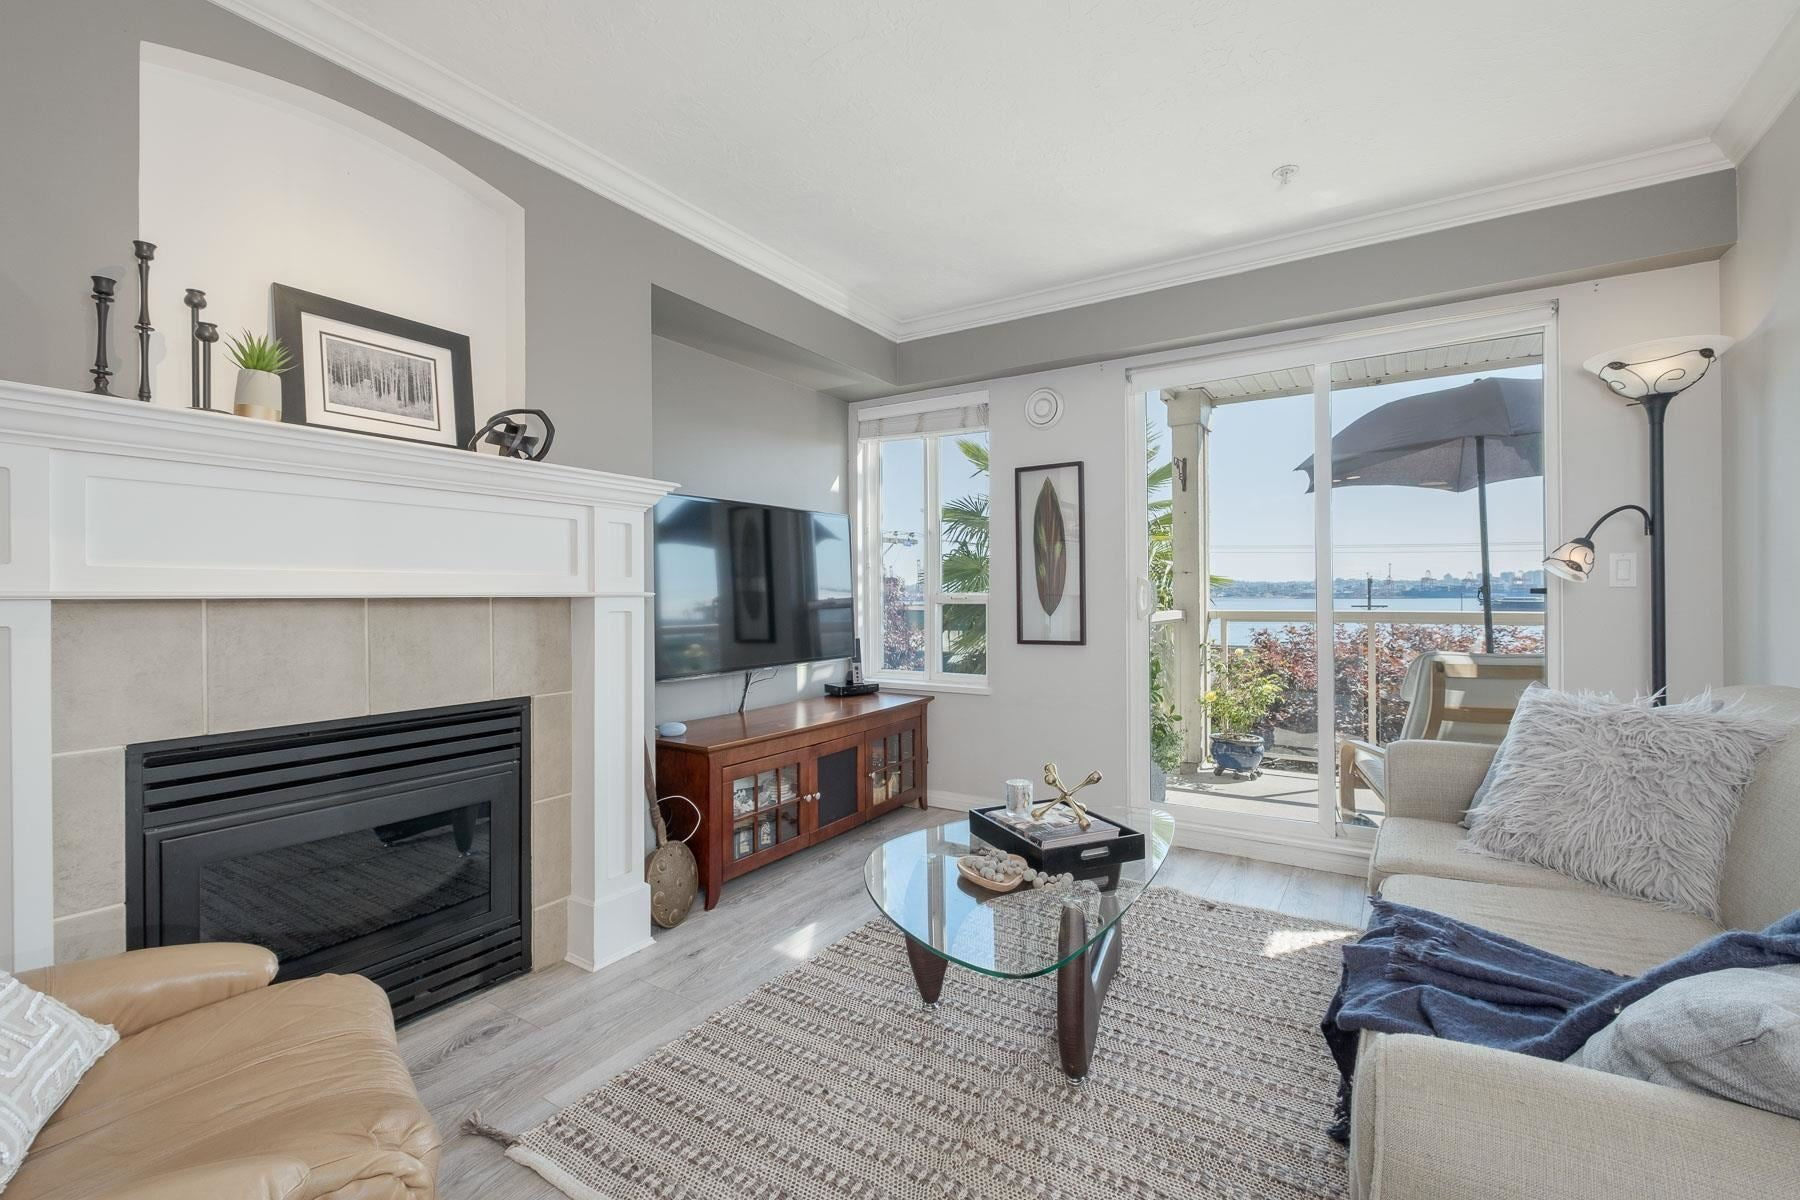 205 333 E 1ST STREET - Lower Lonsdale Apartment/Condo for sale, 1 Bedroom (R2618010) - #8